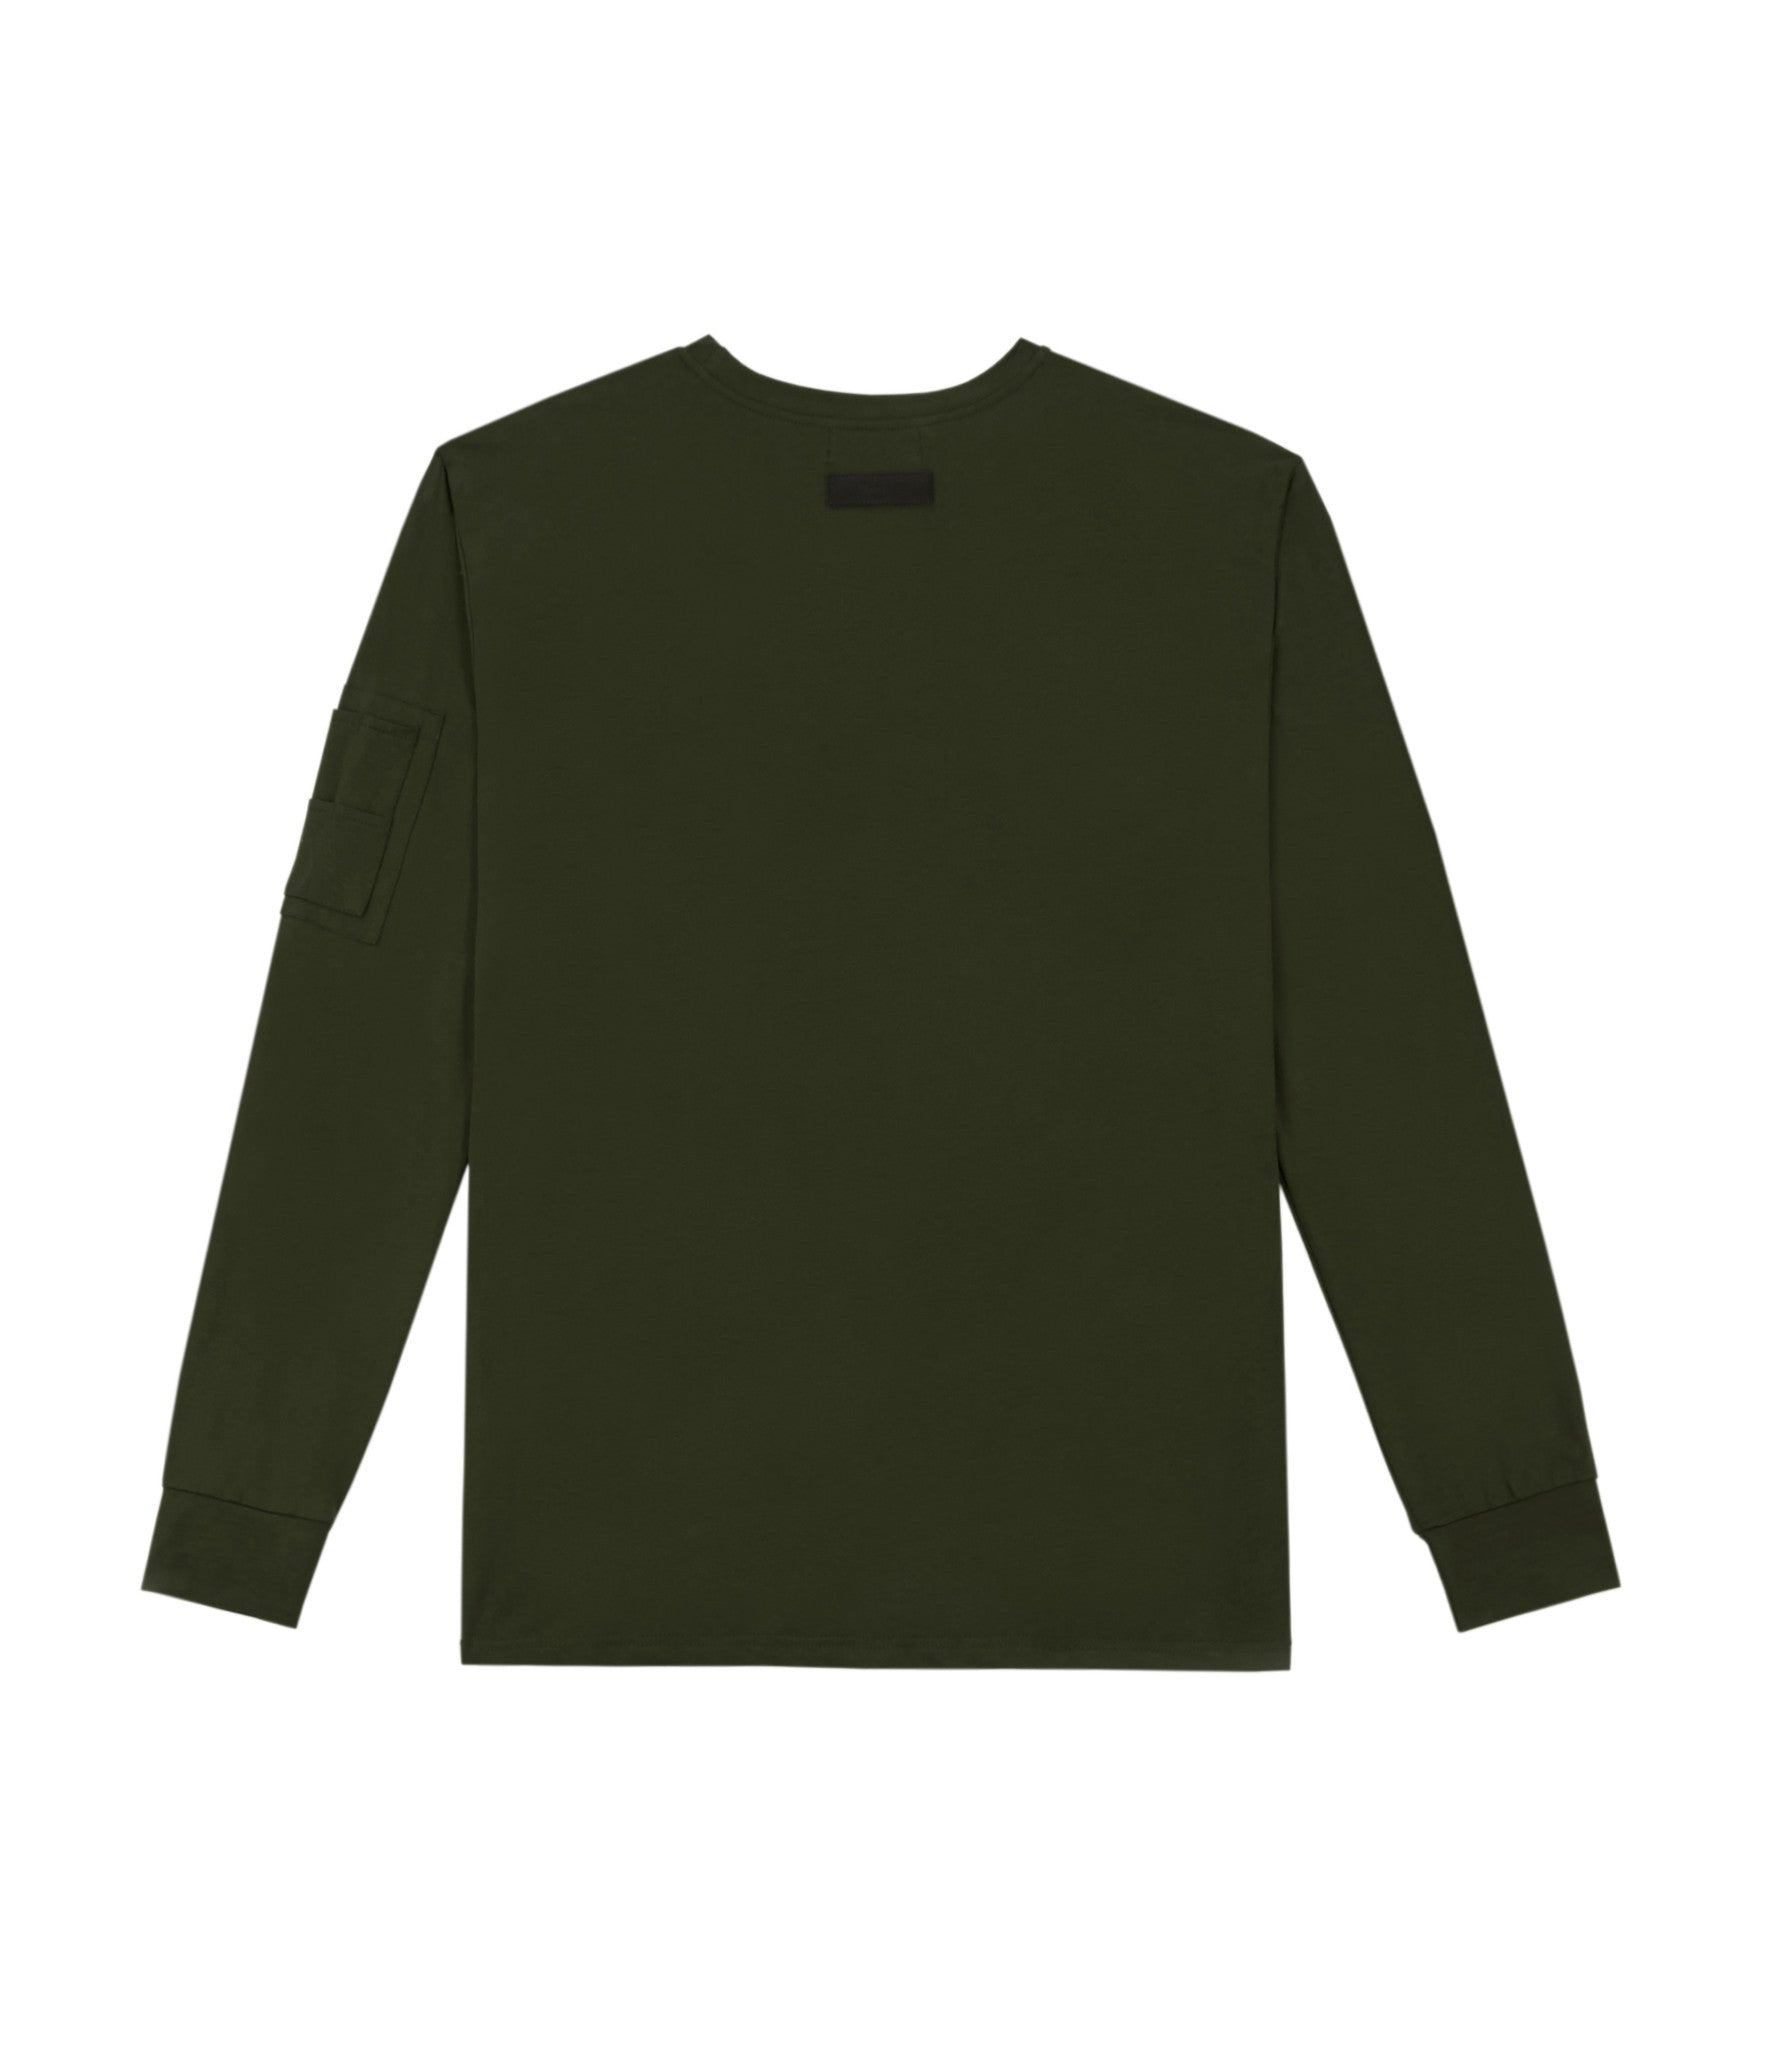 LS303 Utility Long-Sleeve Tee - Olive Green - underated london - underatedco - 3